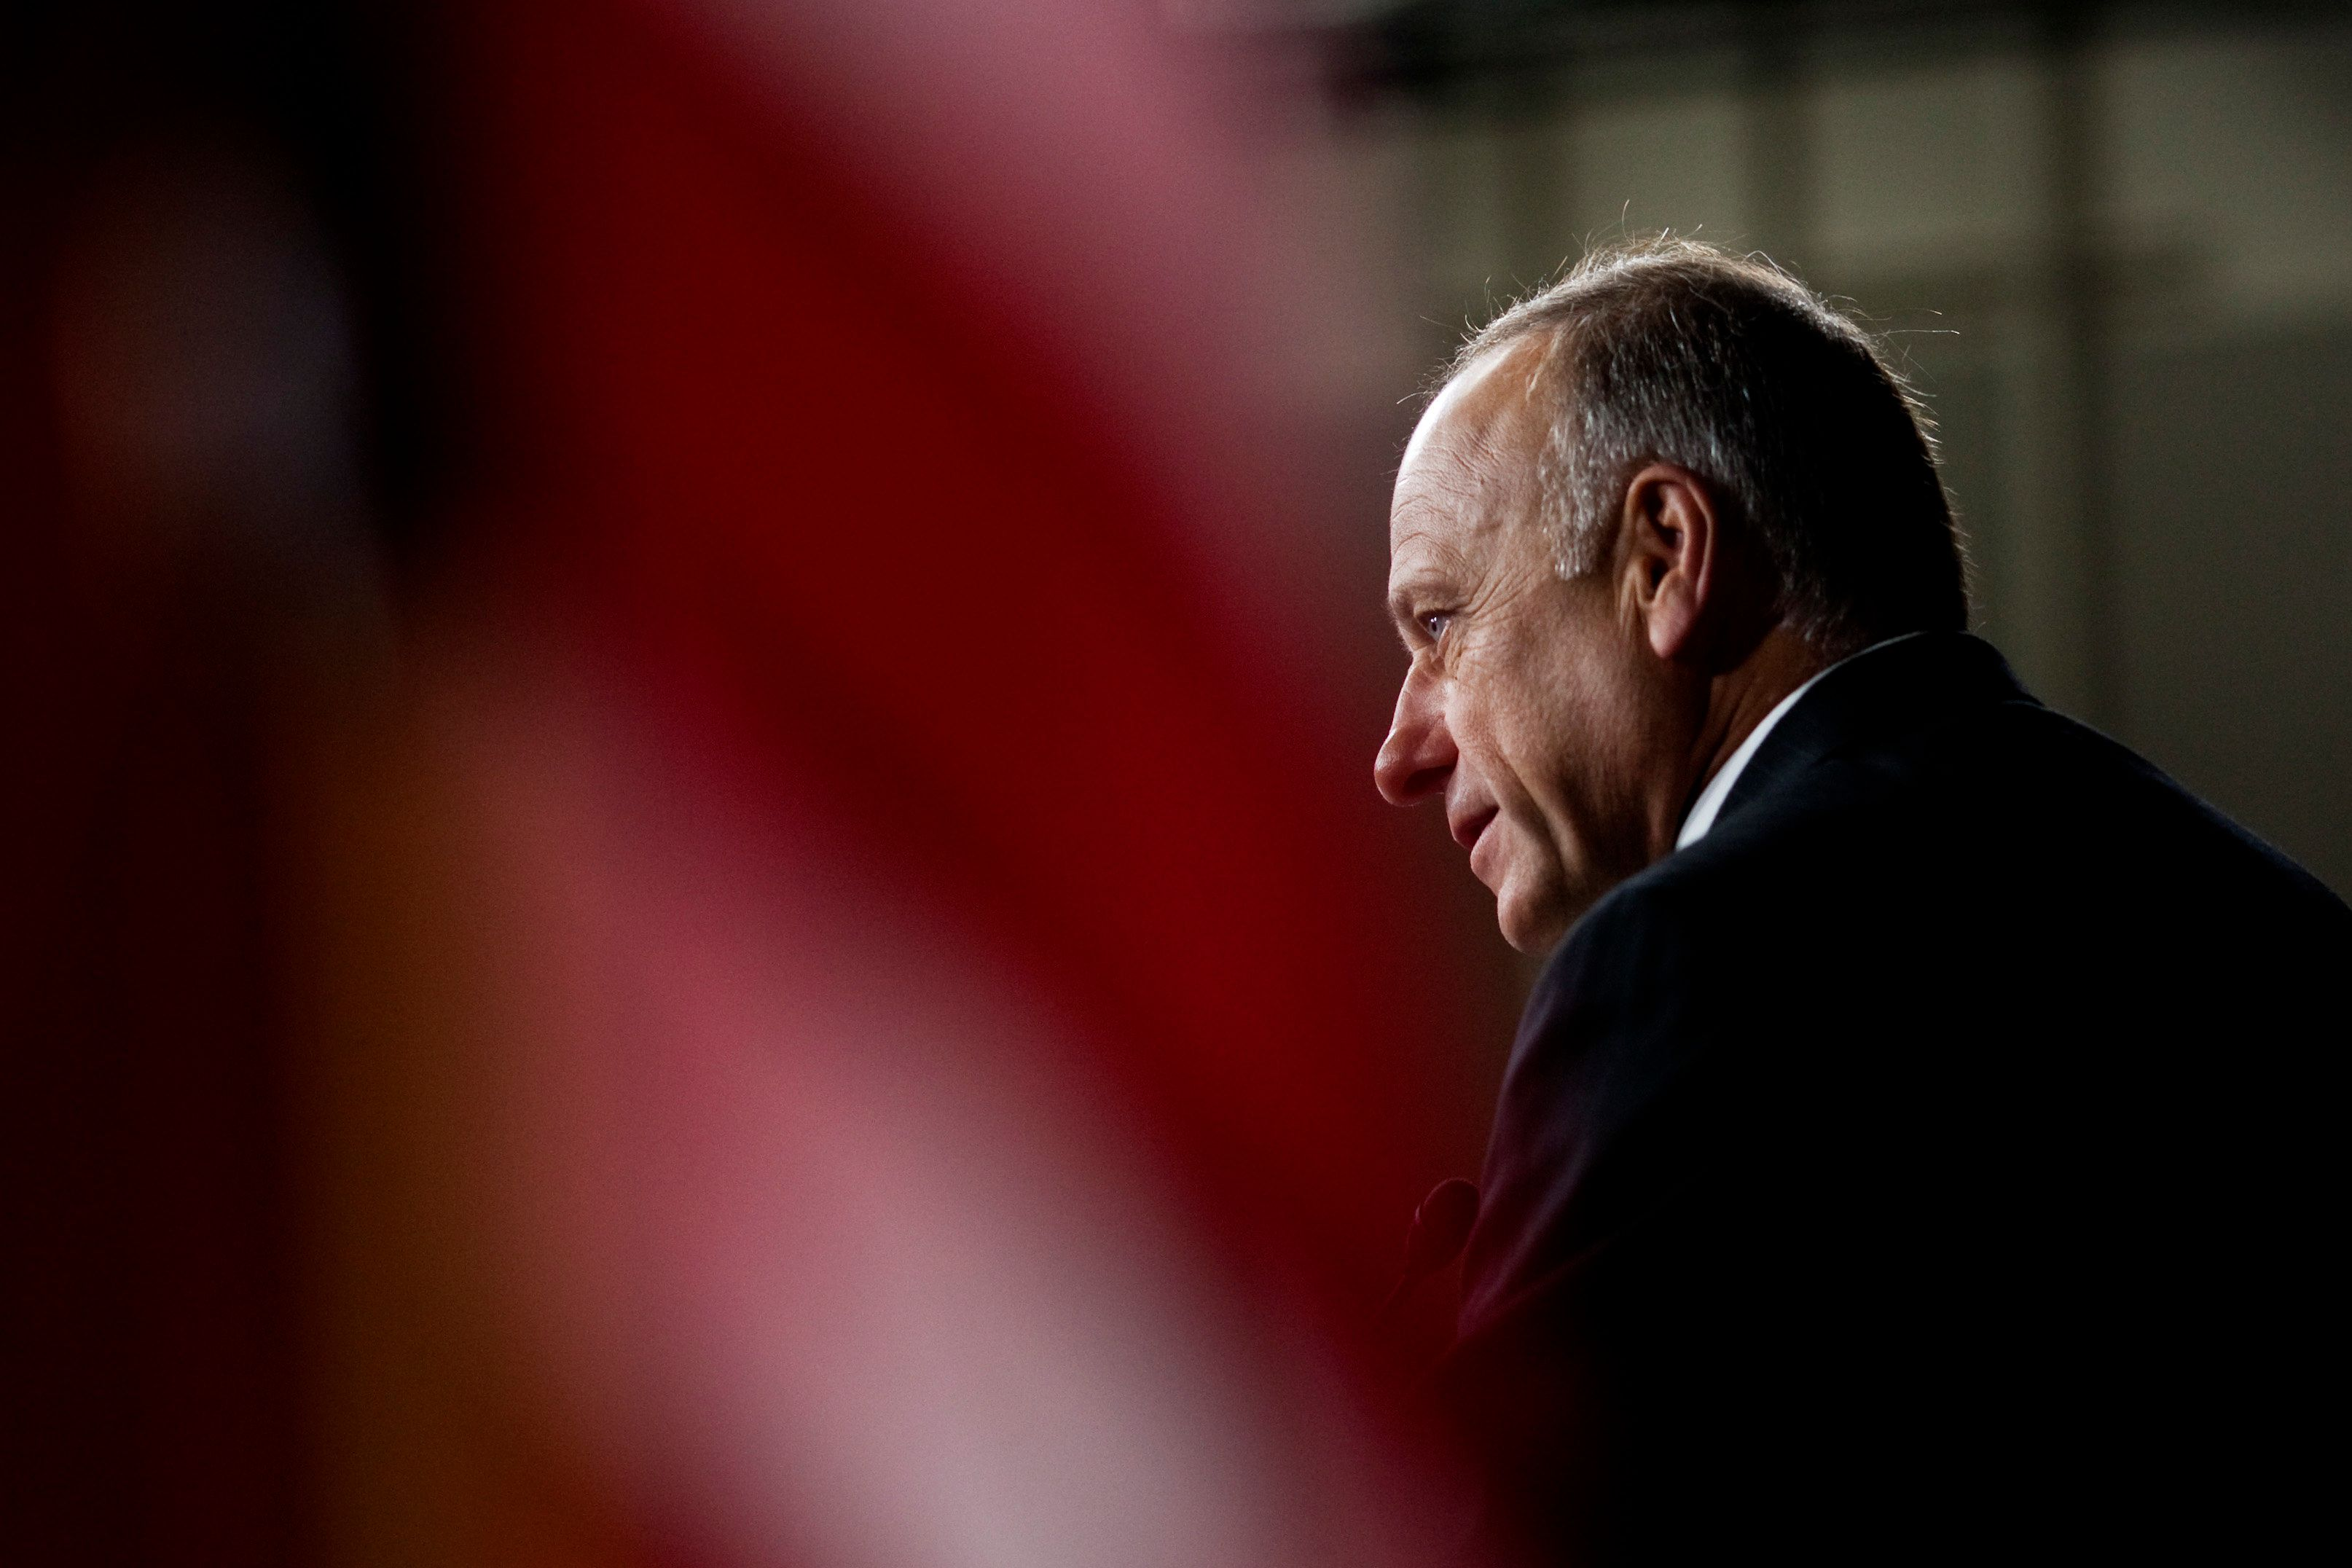 Rep. Steve King, R-Iowa, speaks during a news conference  on Capitol Hill, in Washington, Tuesday, Aug. 10, 2010, announcing a resolution condemning the Proposition 8 decision in California on same-sex marriage.  (AP Photo/Drew Angerer)